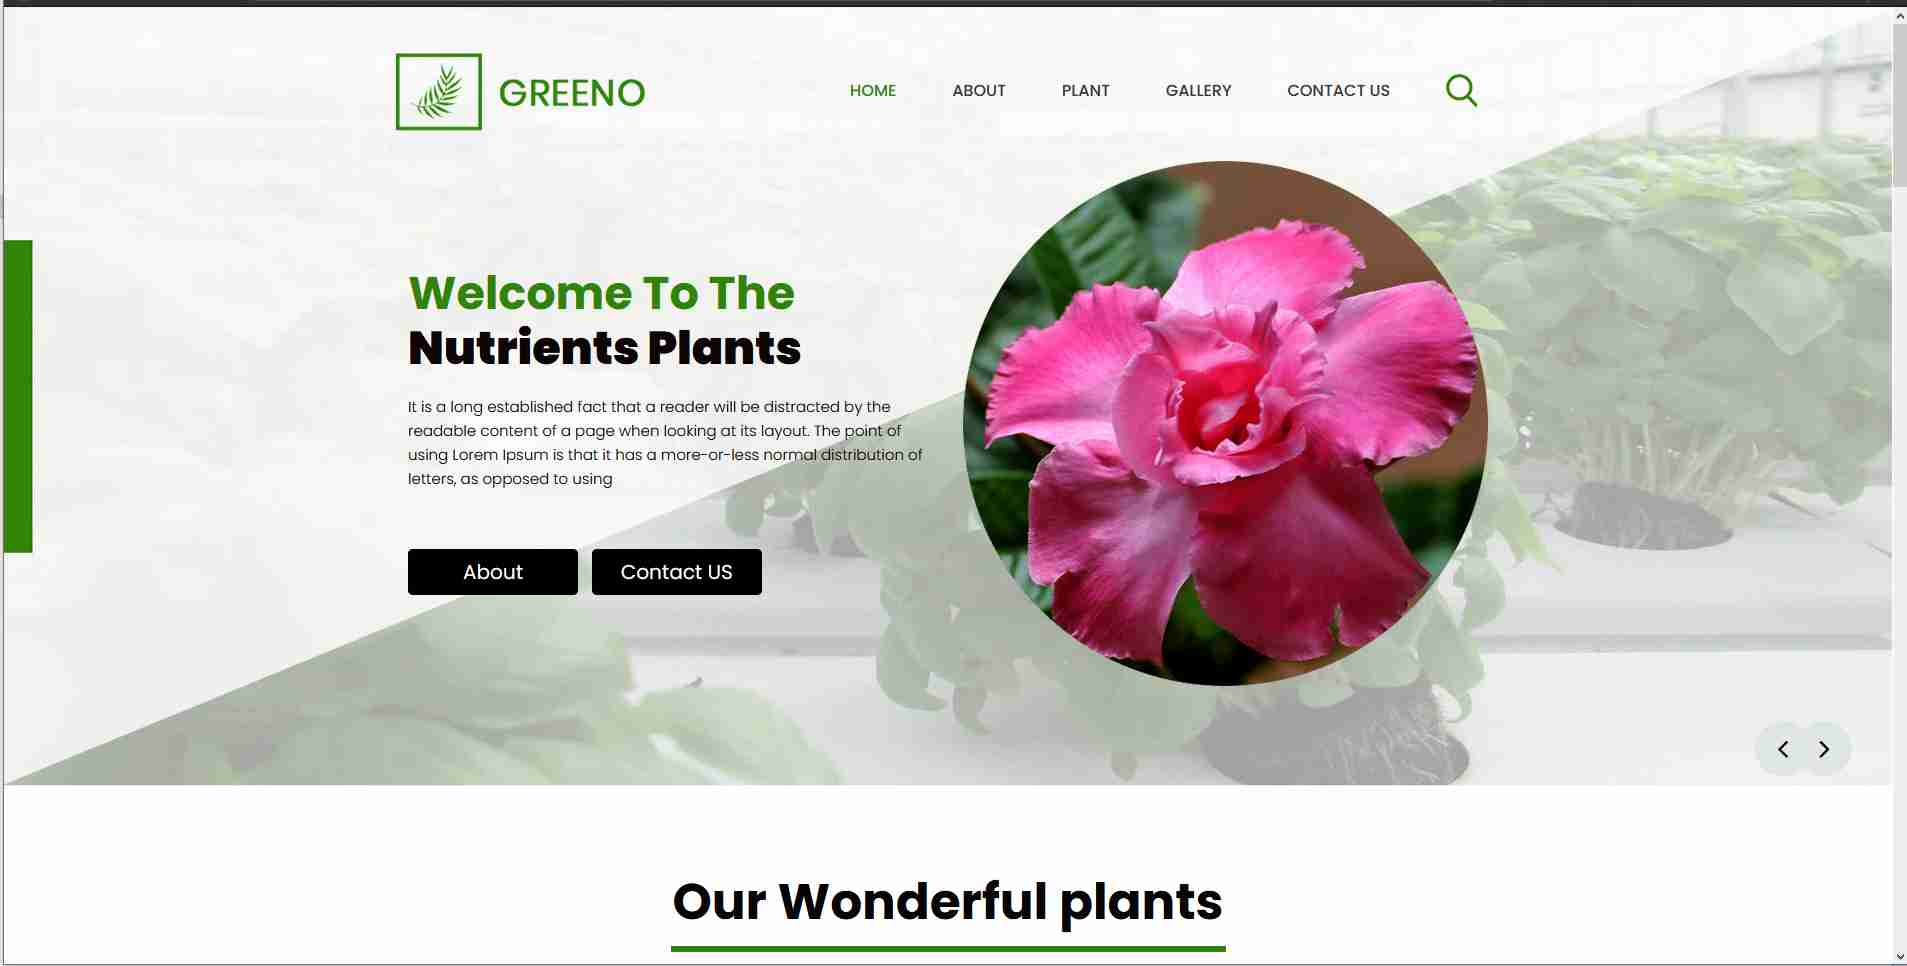 Website Template Design Using Html And CSS